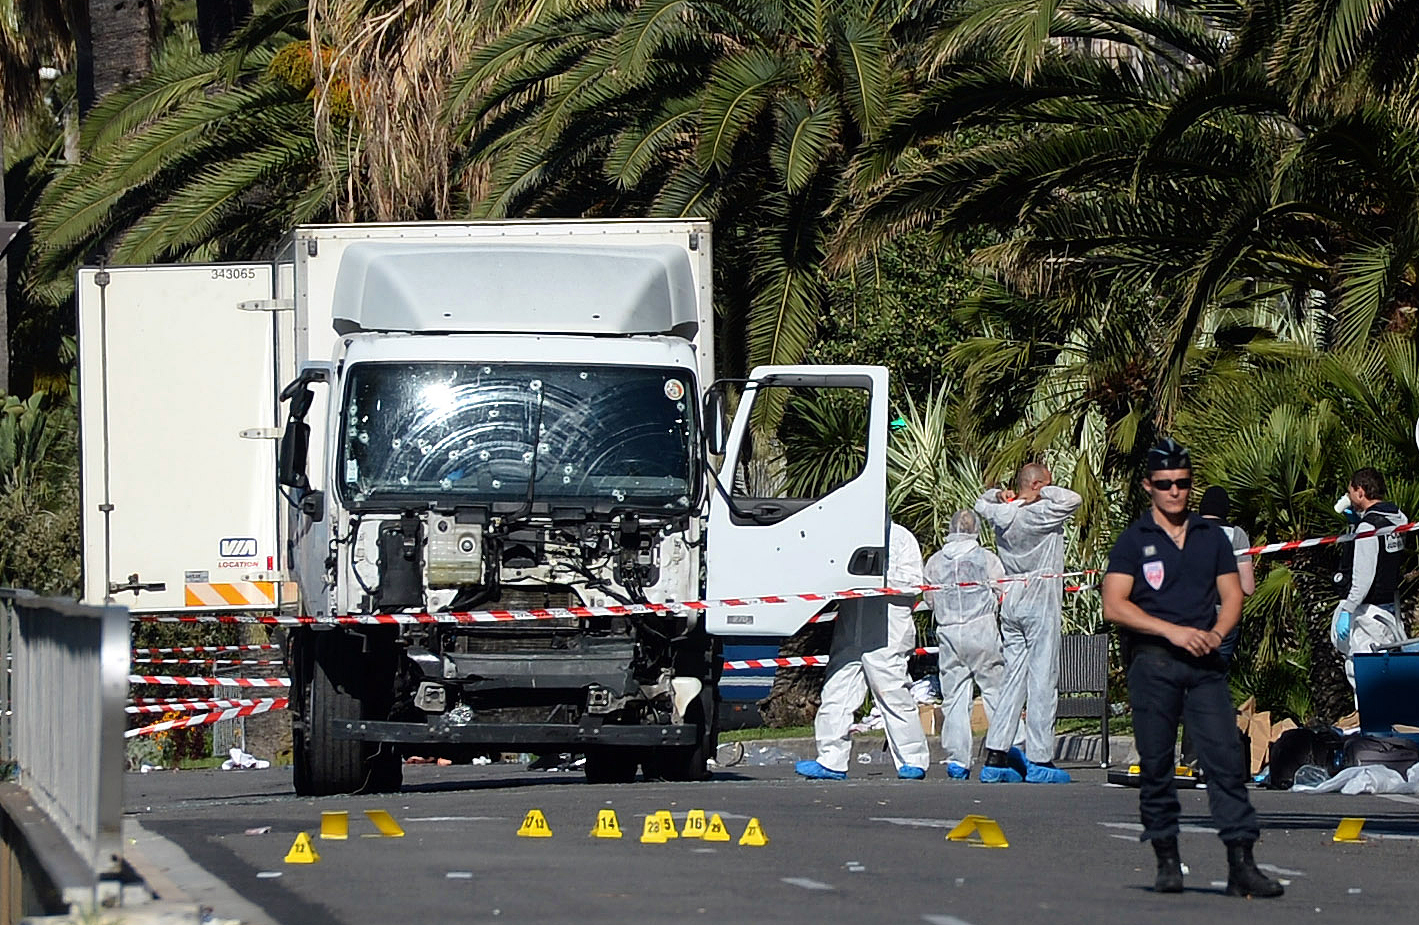 Police secure the area in Nice, France on July 15, 2016 . Photo: Getty Images